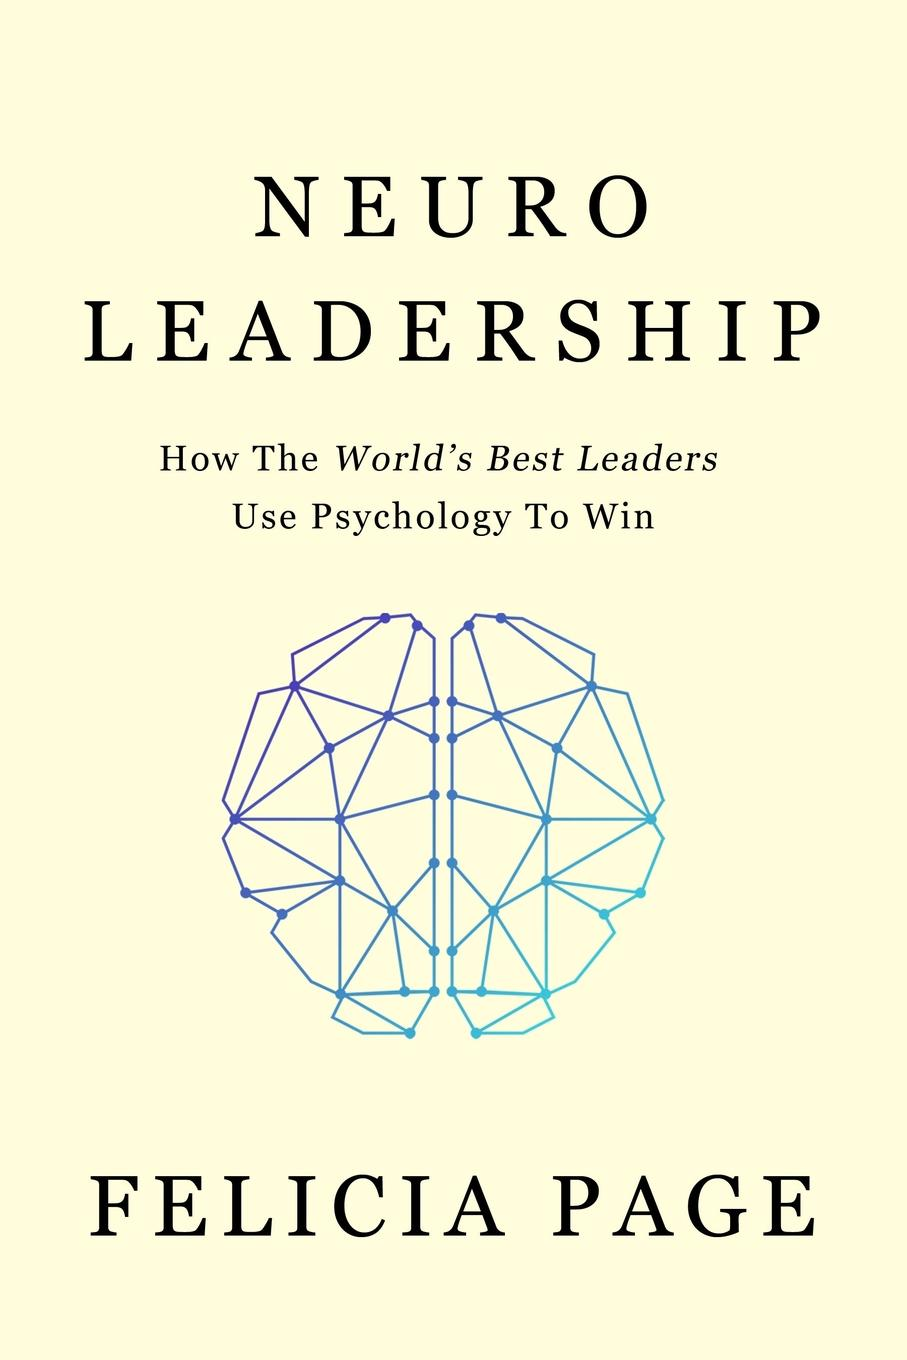 Felicia Page NeuroLeadership. How The World.s Best Leaders Use Psychology To Win jordan d lewis trusted partners how companies build mutual trust and win together